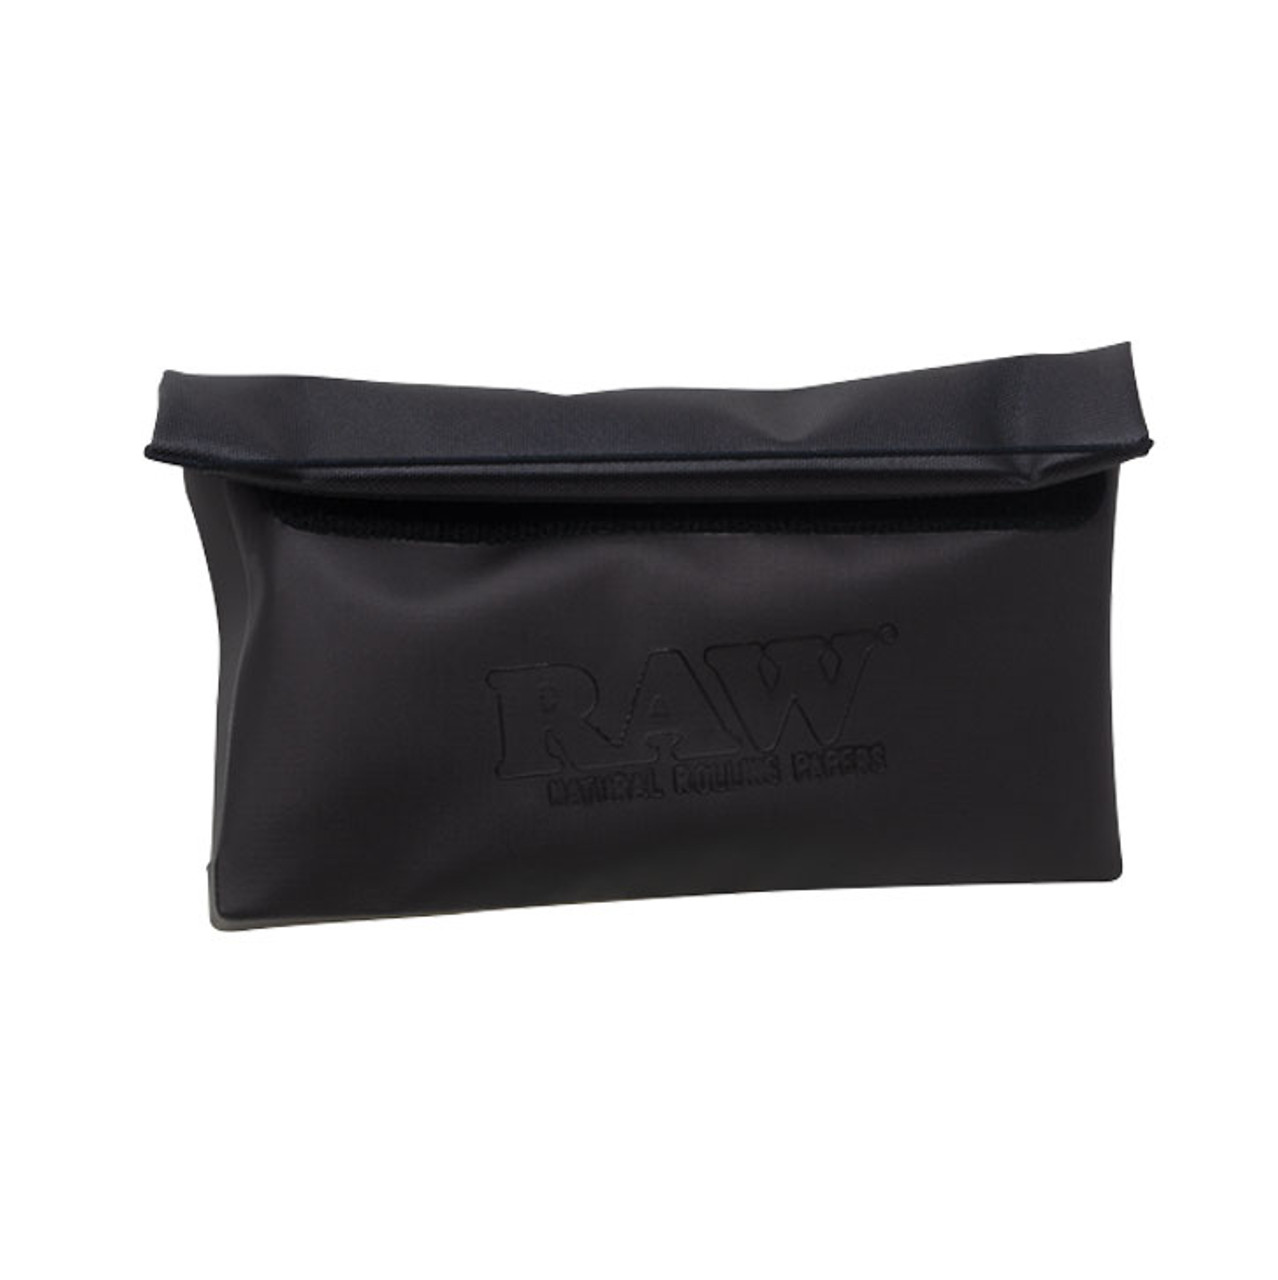 RAW X RYOT Smell Proof Flat Pack